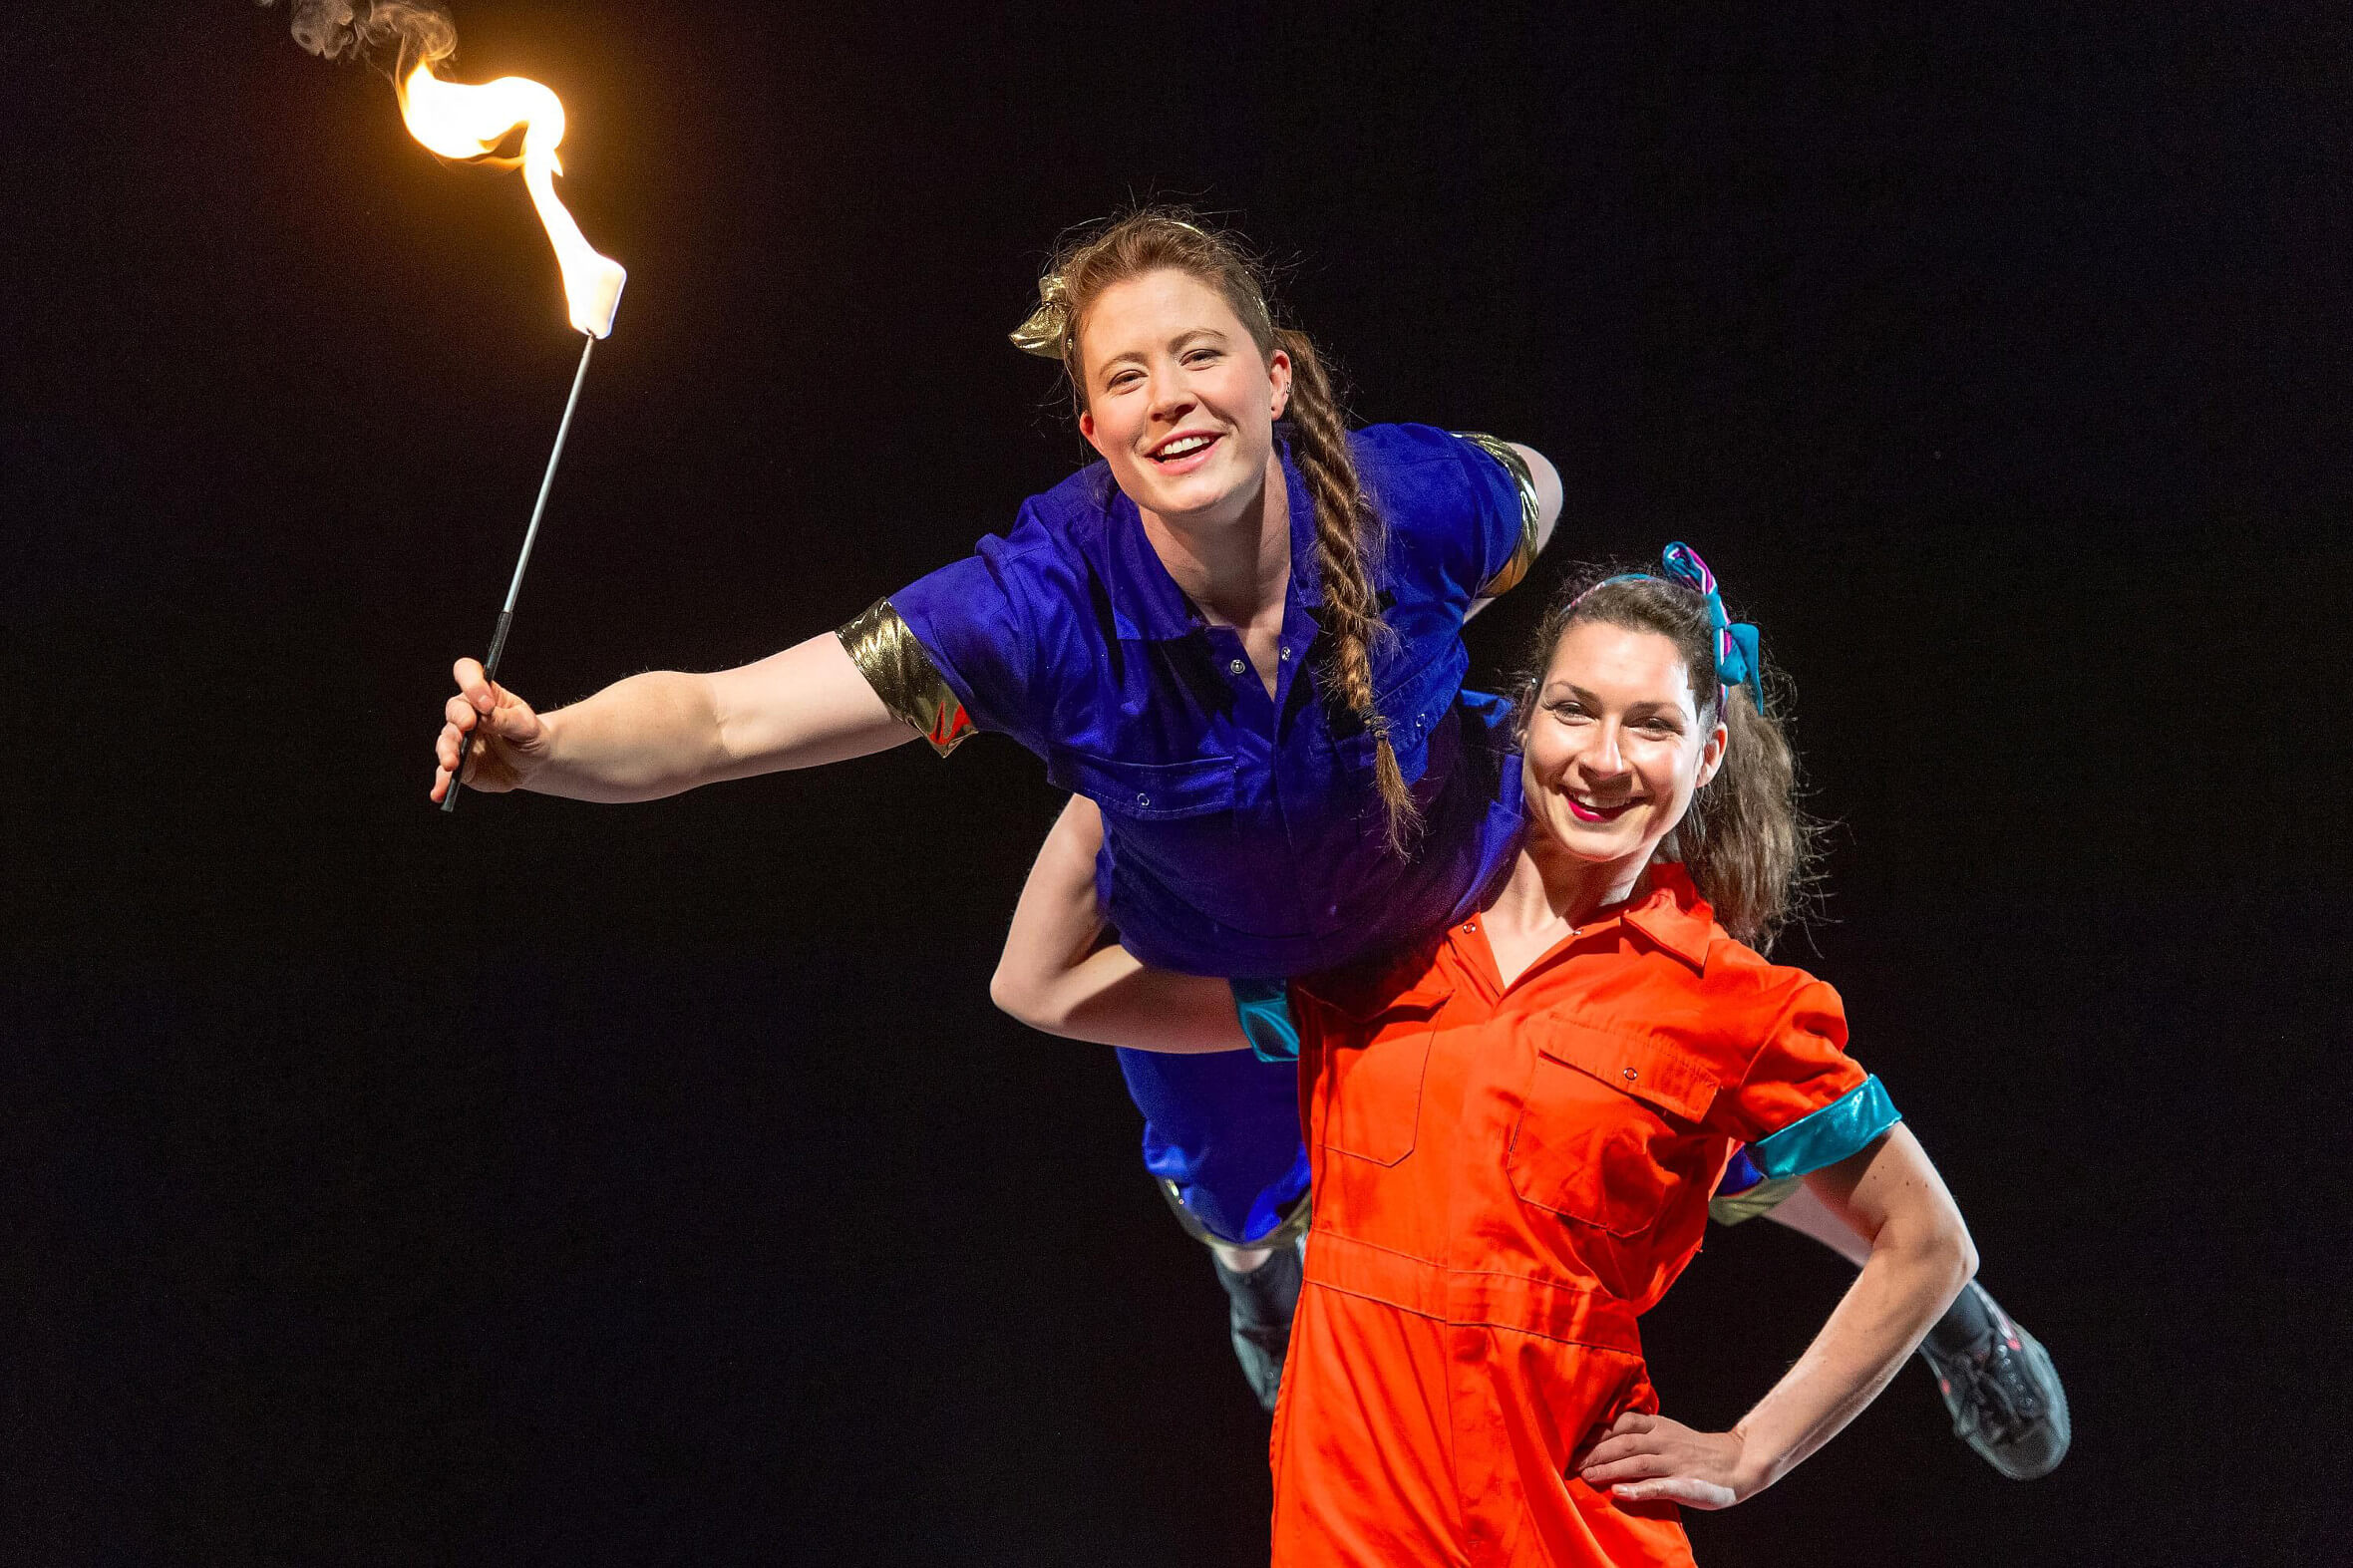 SWS Edinburgh Science Fest Apr 2019 photo credit Ian Georgeson. Courtesy of Circus250